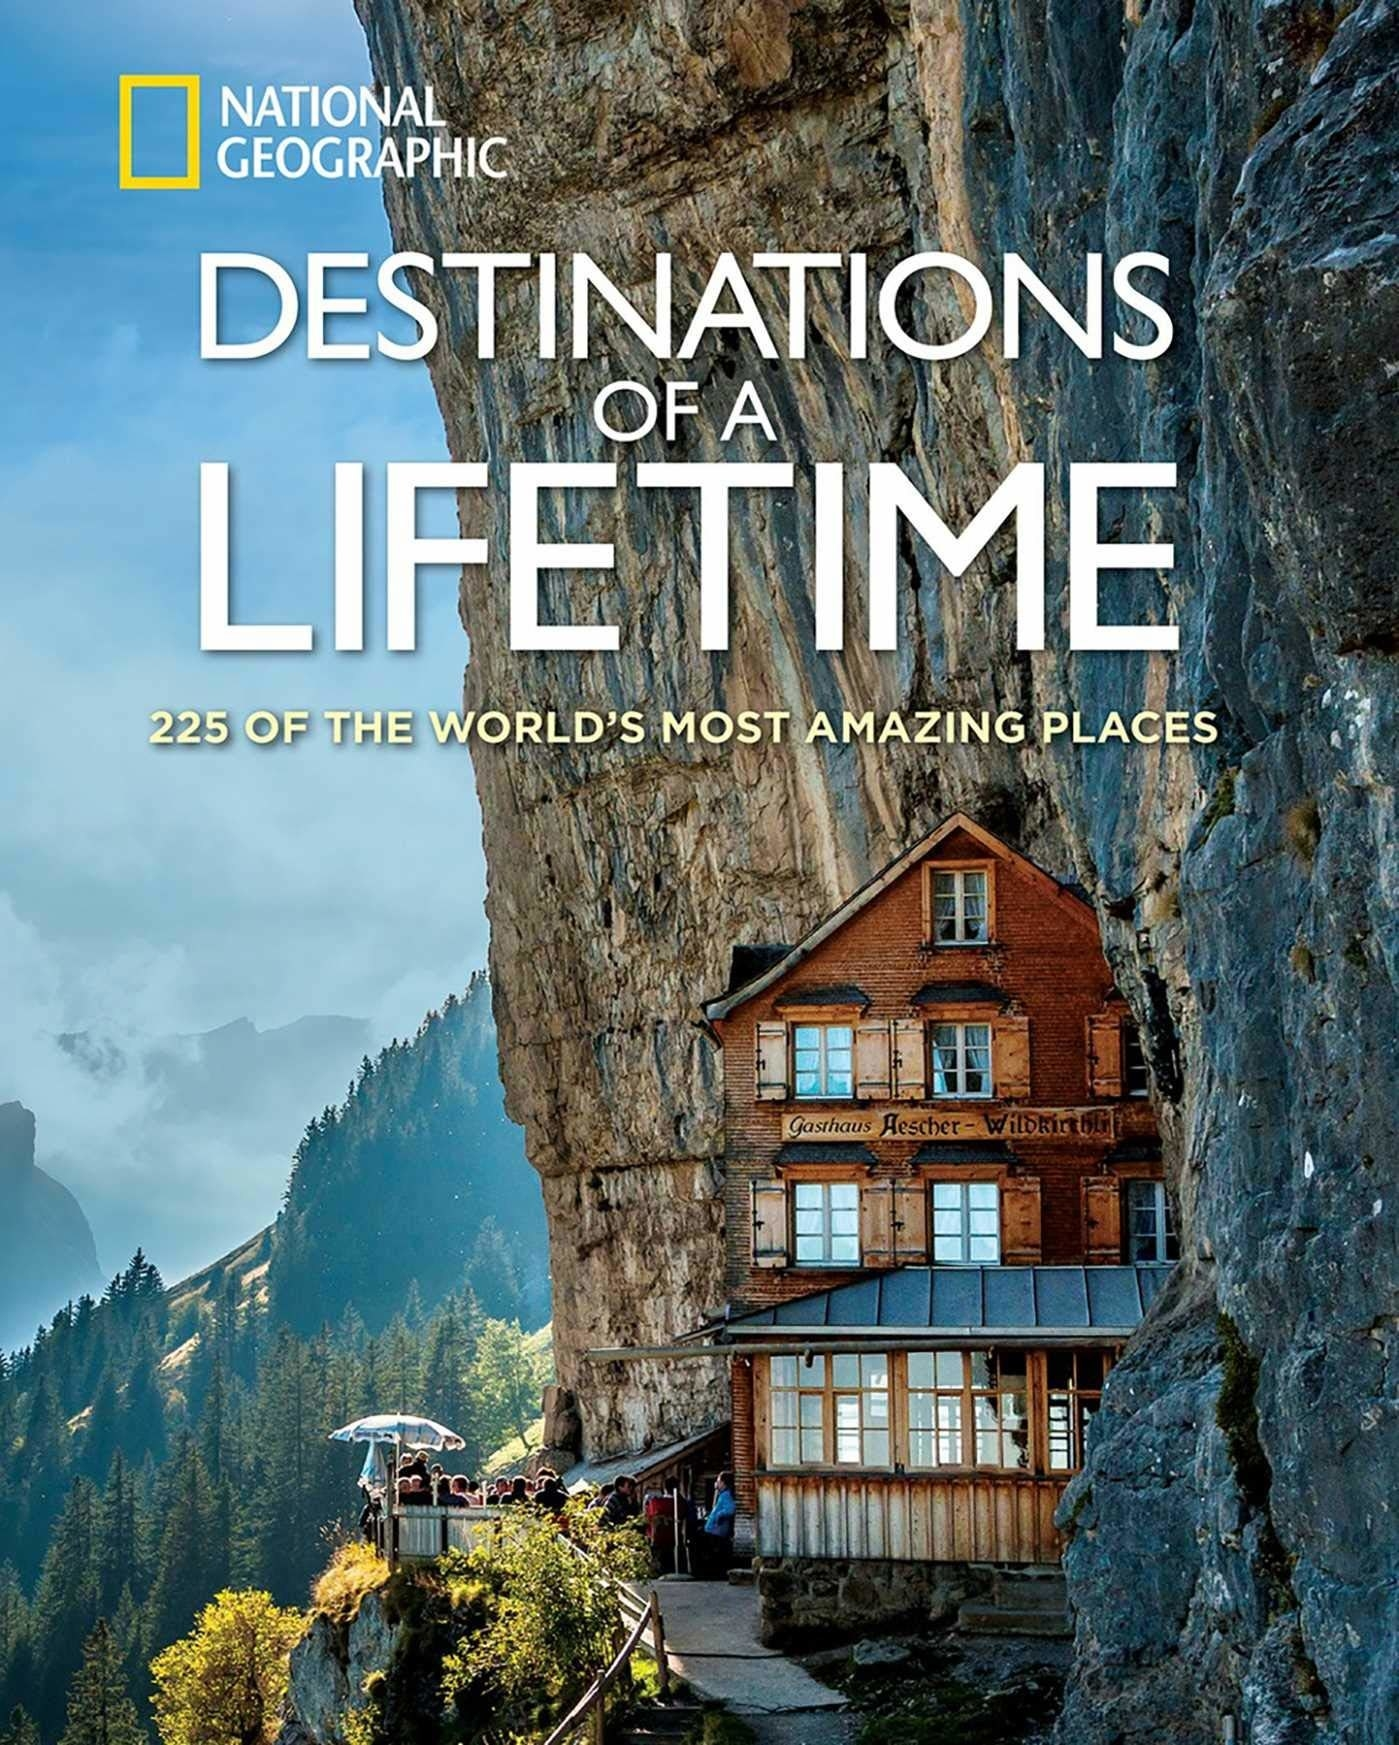 cover of the book that says 225 of the world's most amazing places